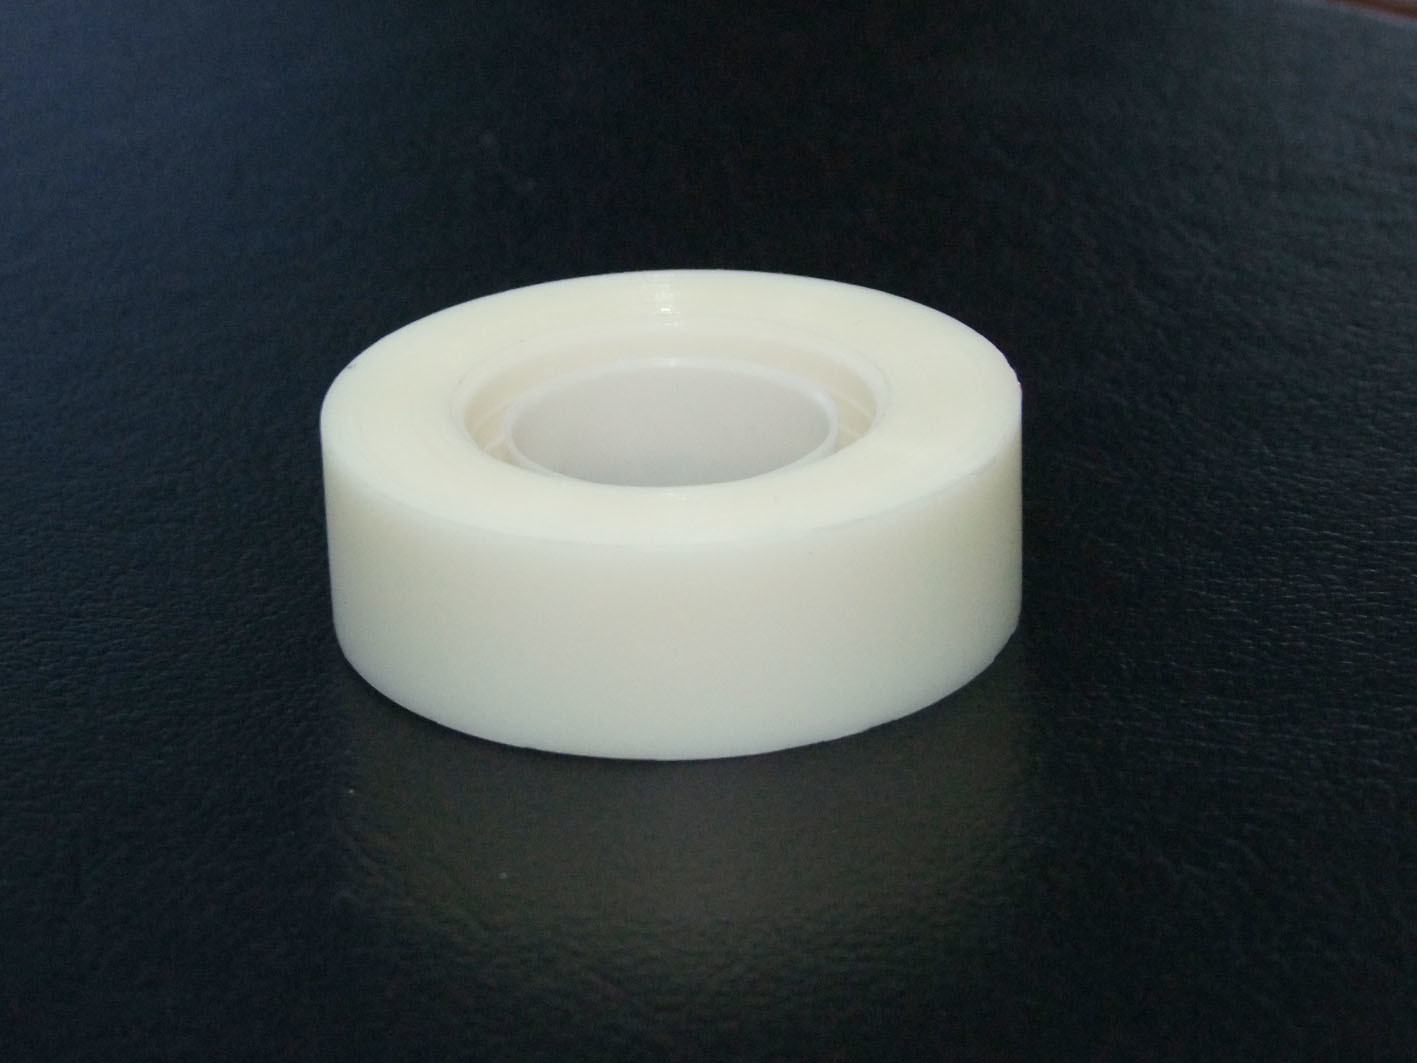 Easy Tear Invisible Tape in 2 Rolls Size 19mm X 33m